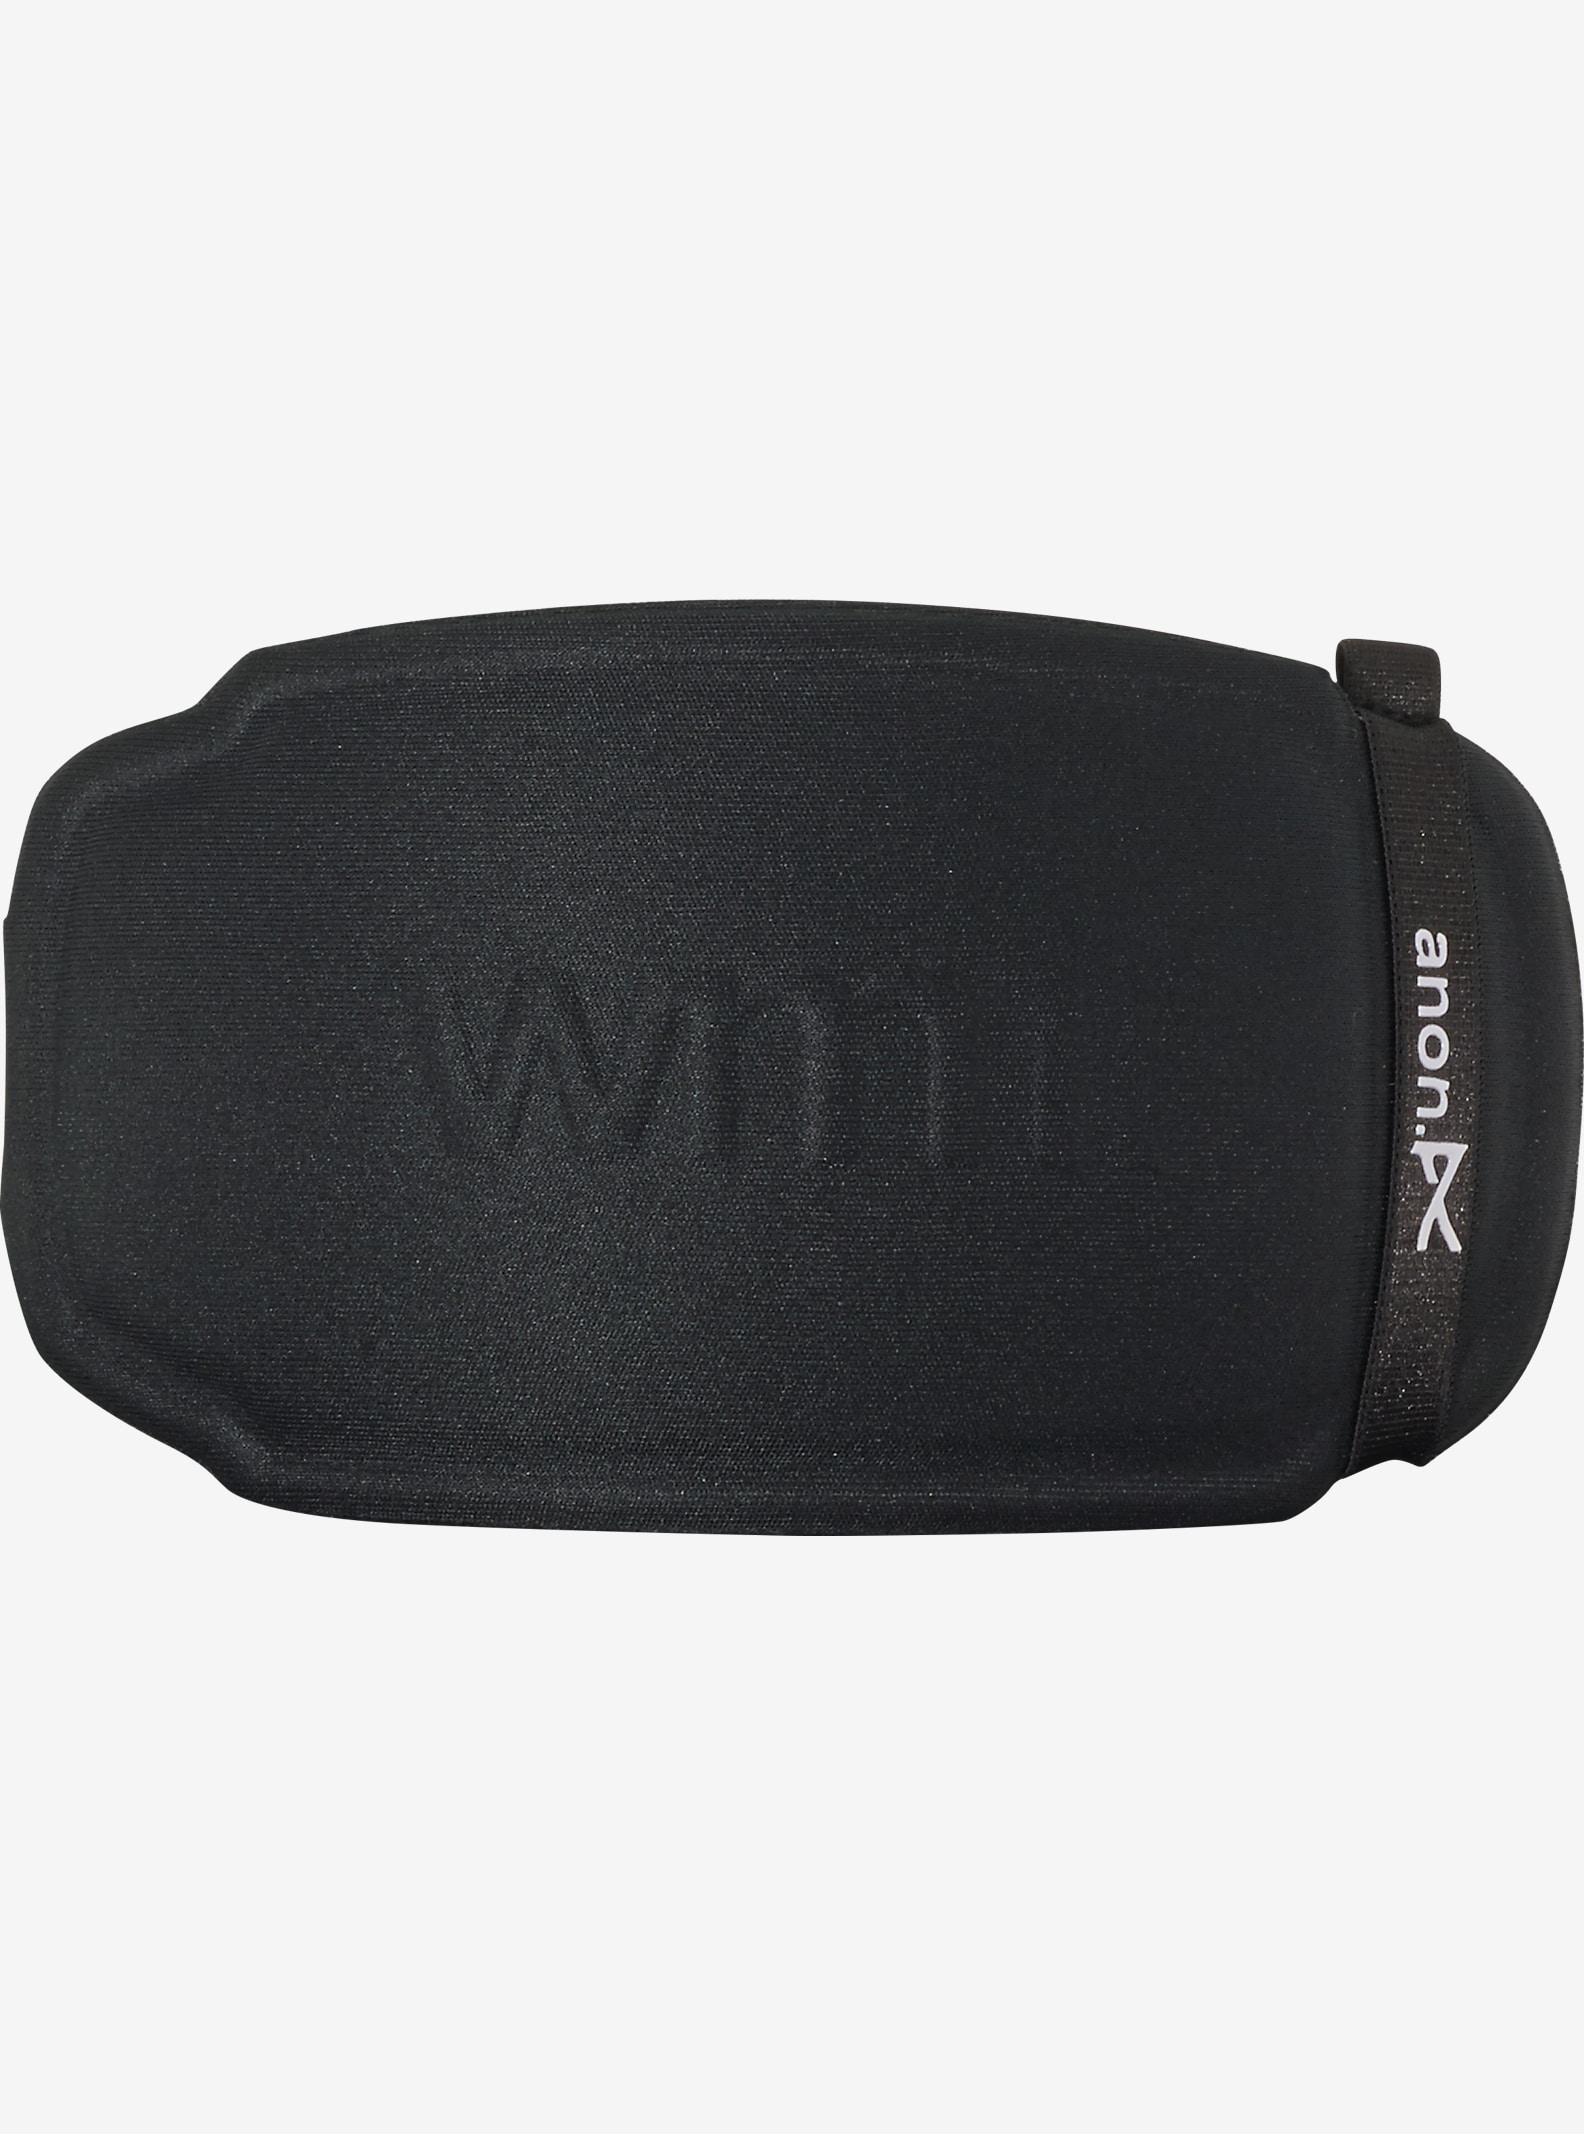 anon. WM1 Lens Case shown in Black